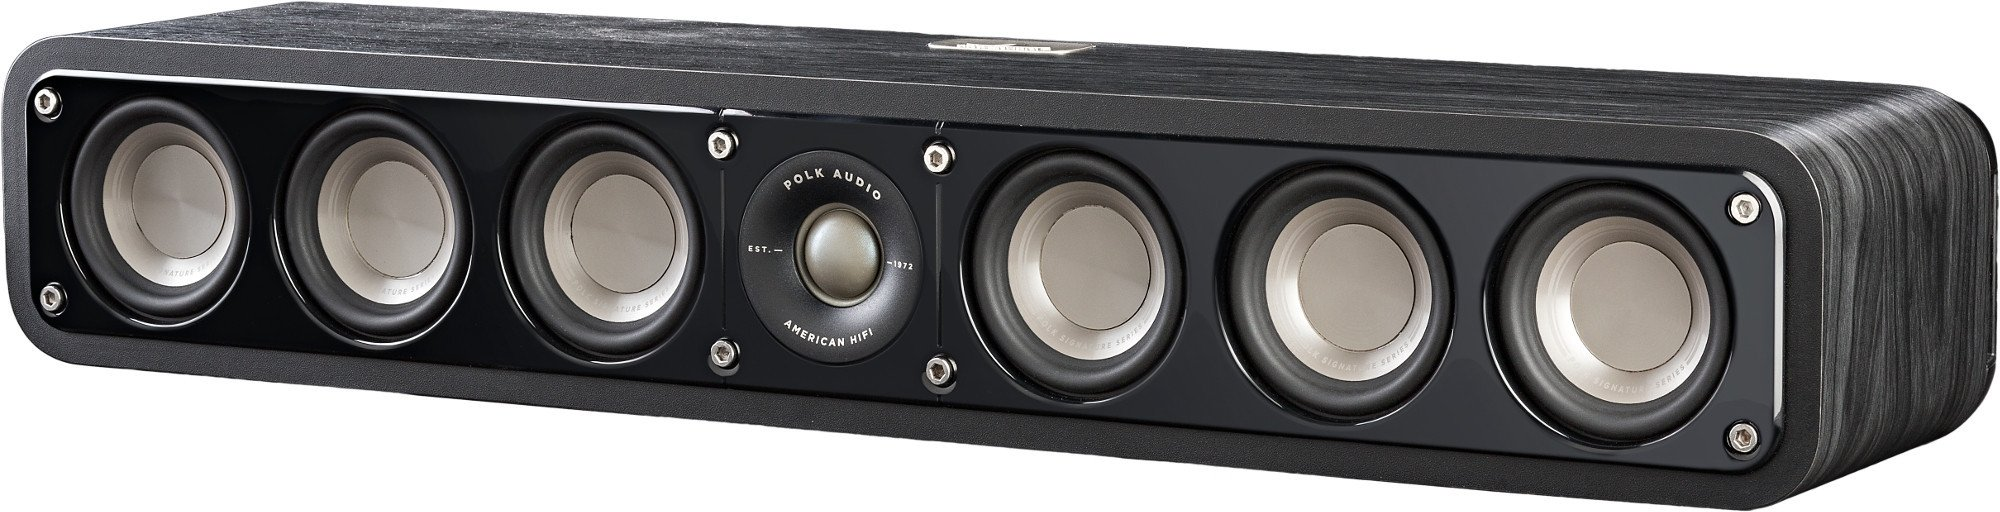 The Polk Audio Signature Series S35 Review